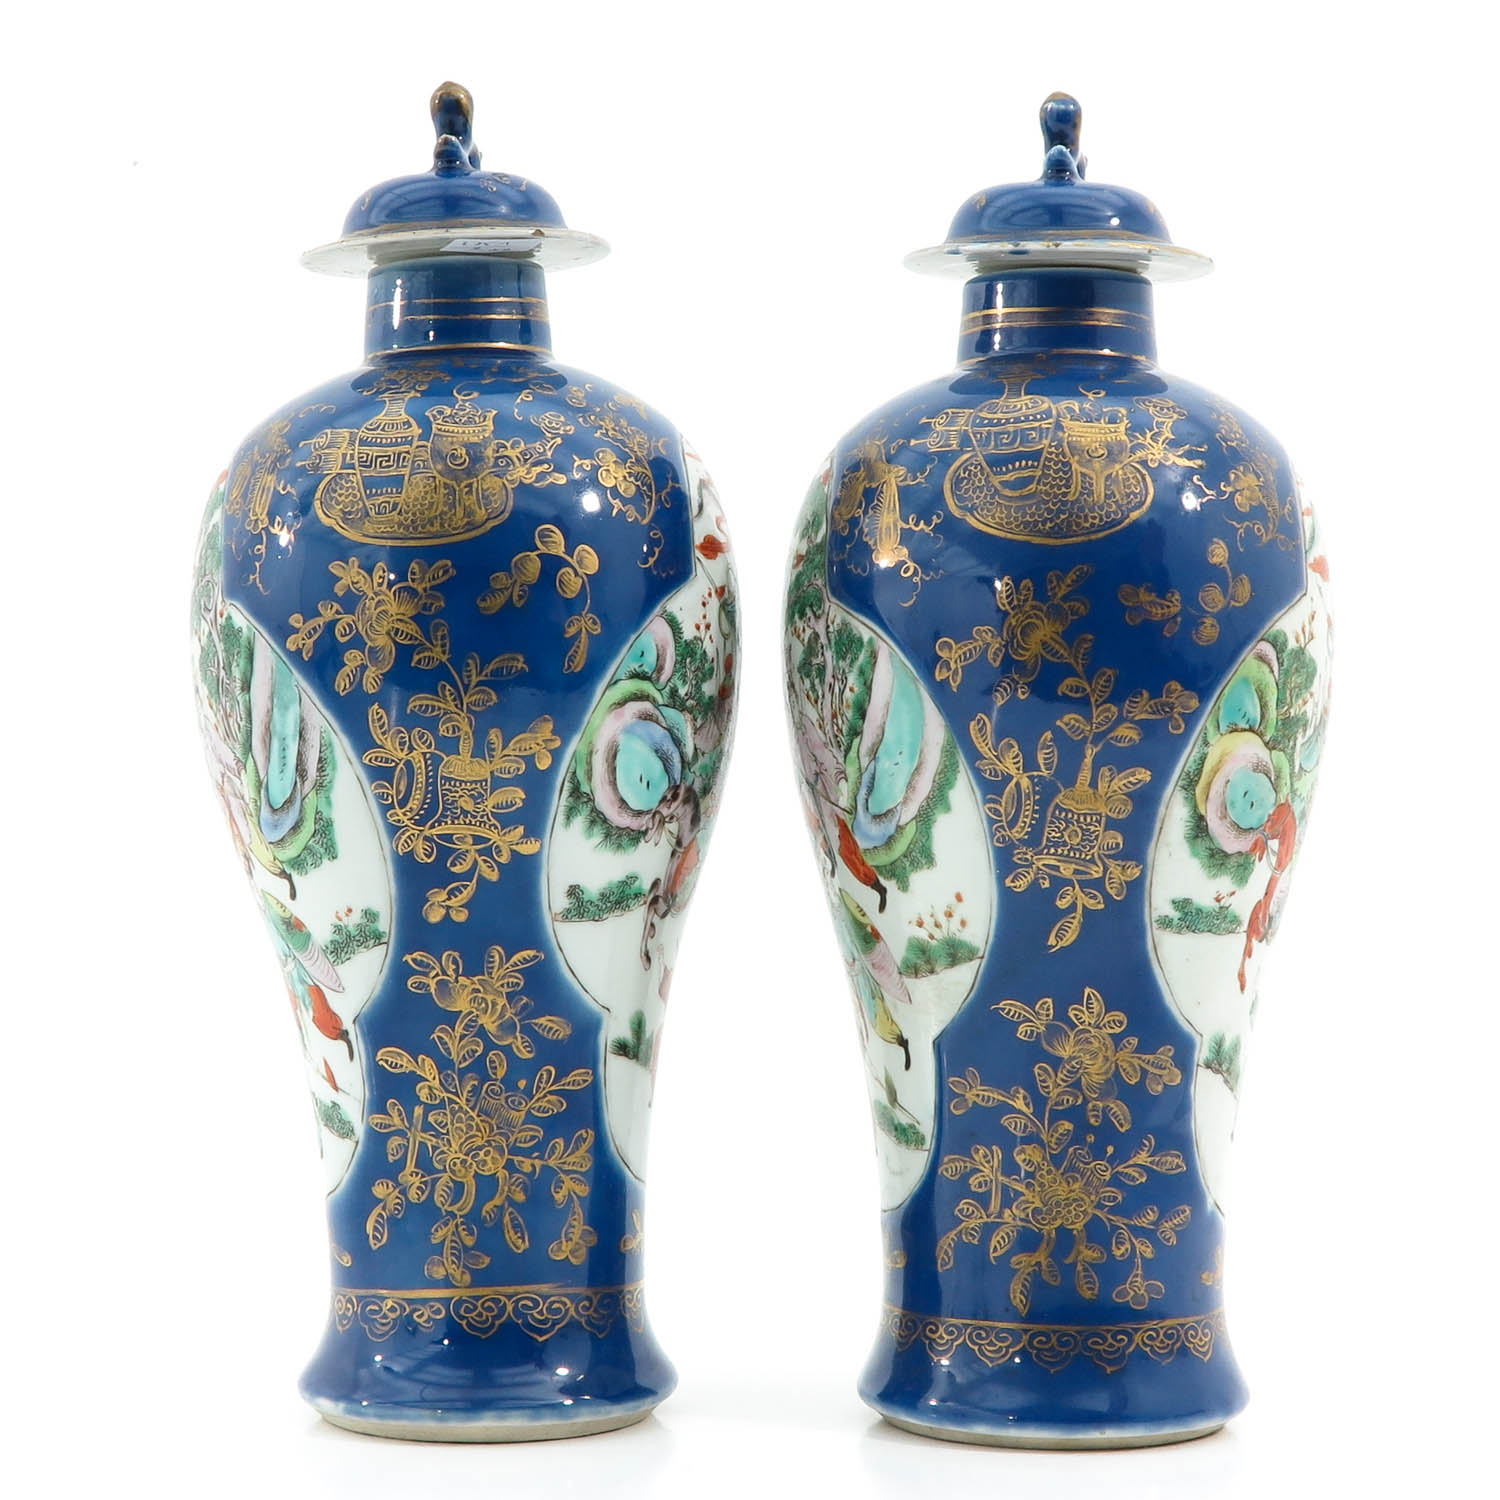 A Pair of Powder Blue Vases - Image 4 of 10